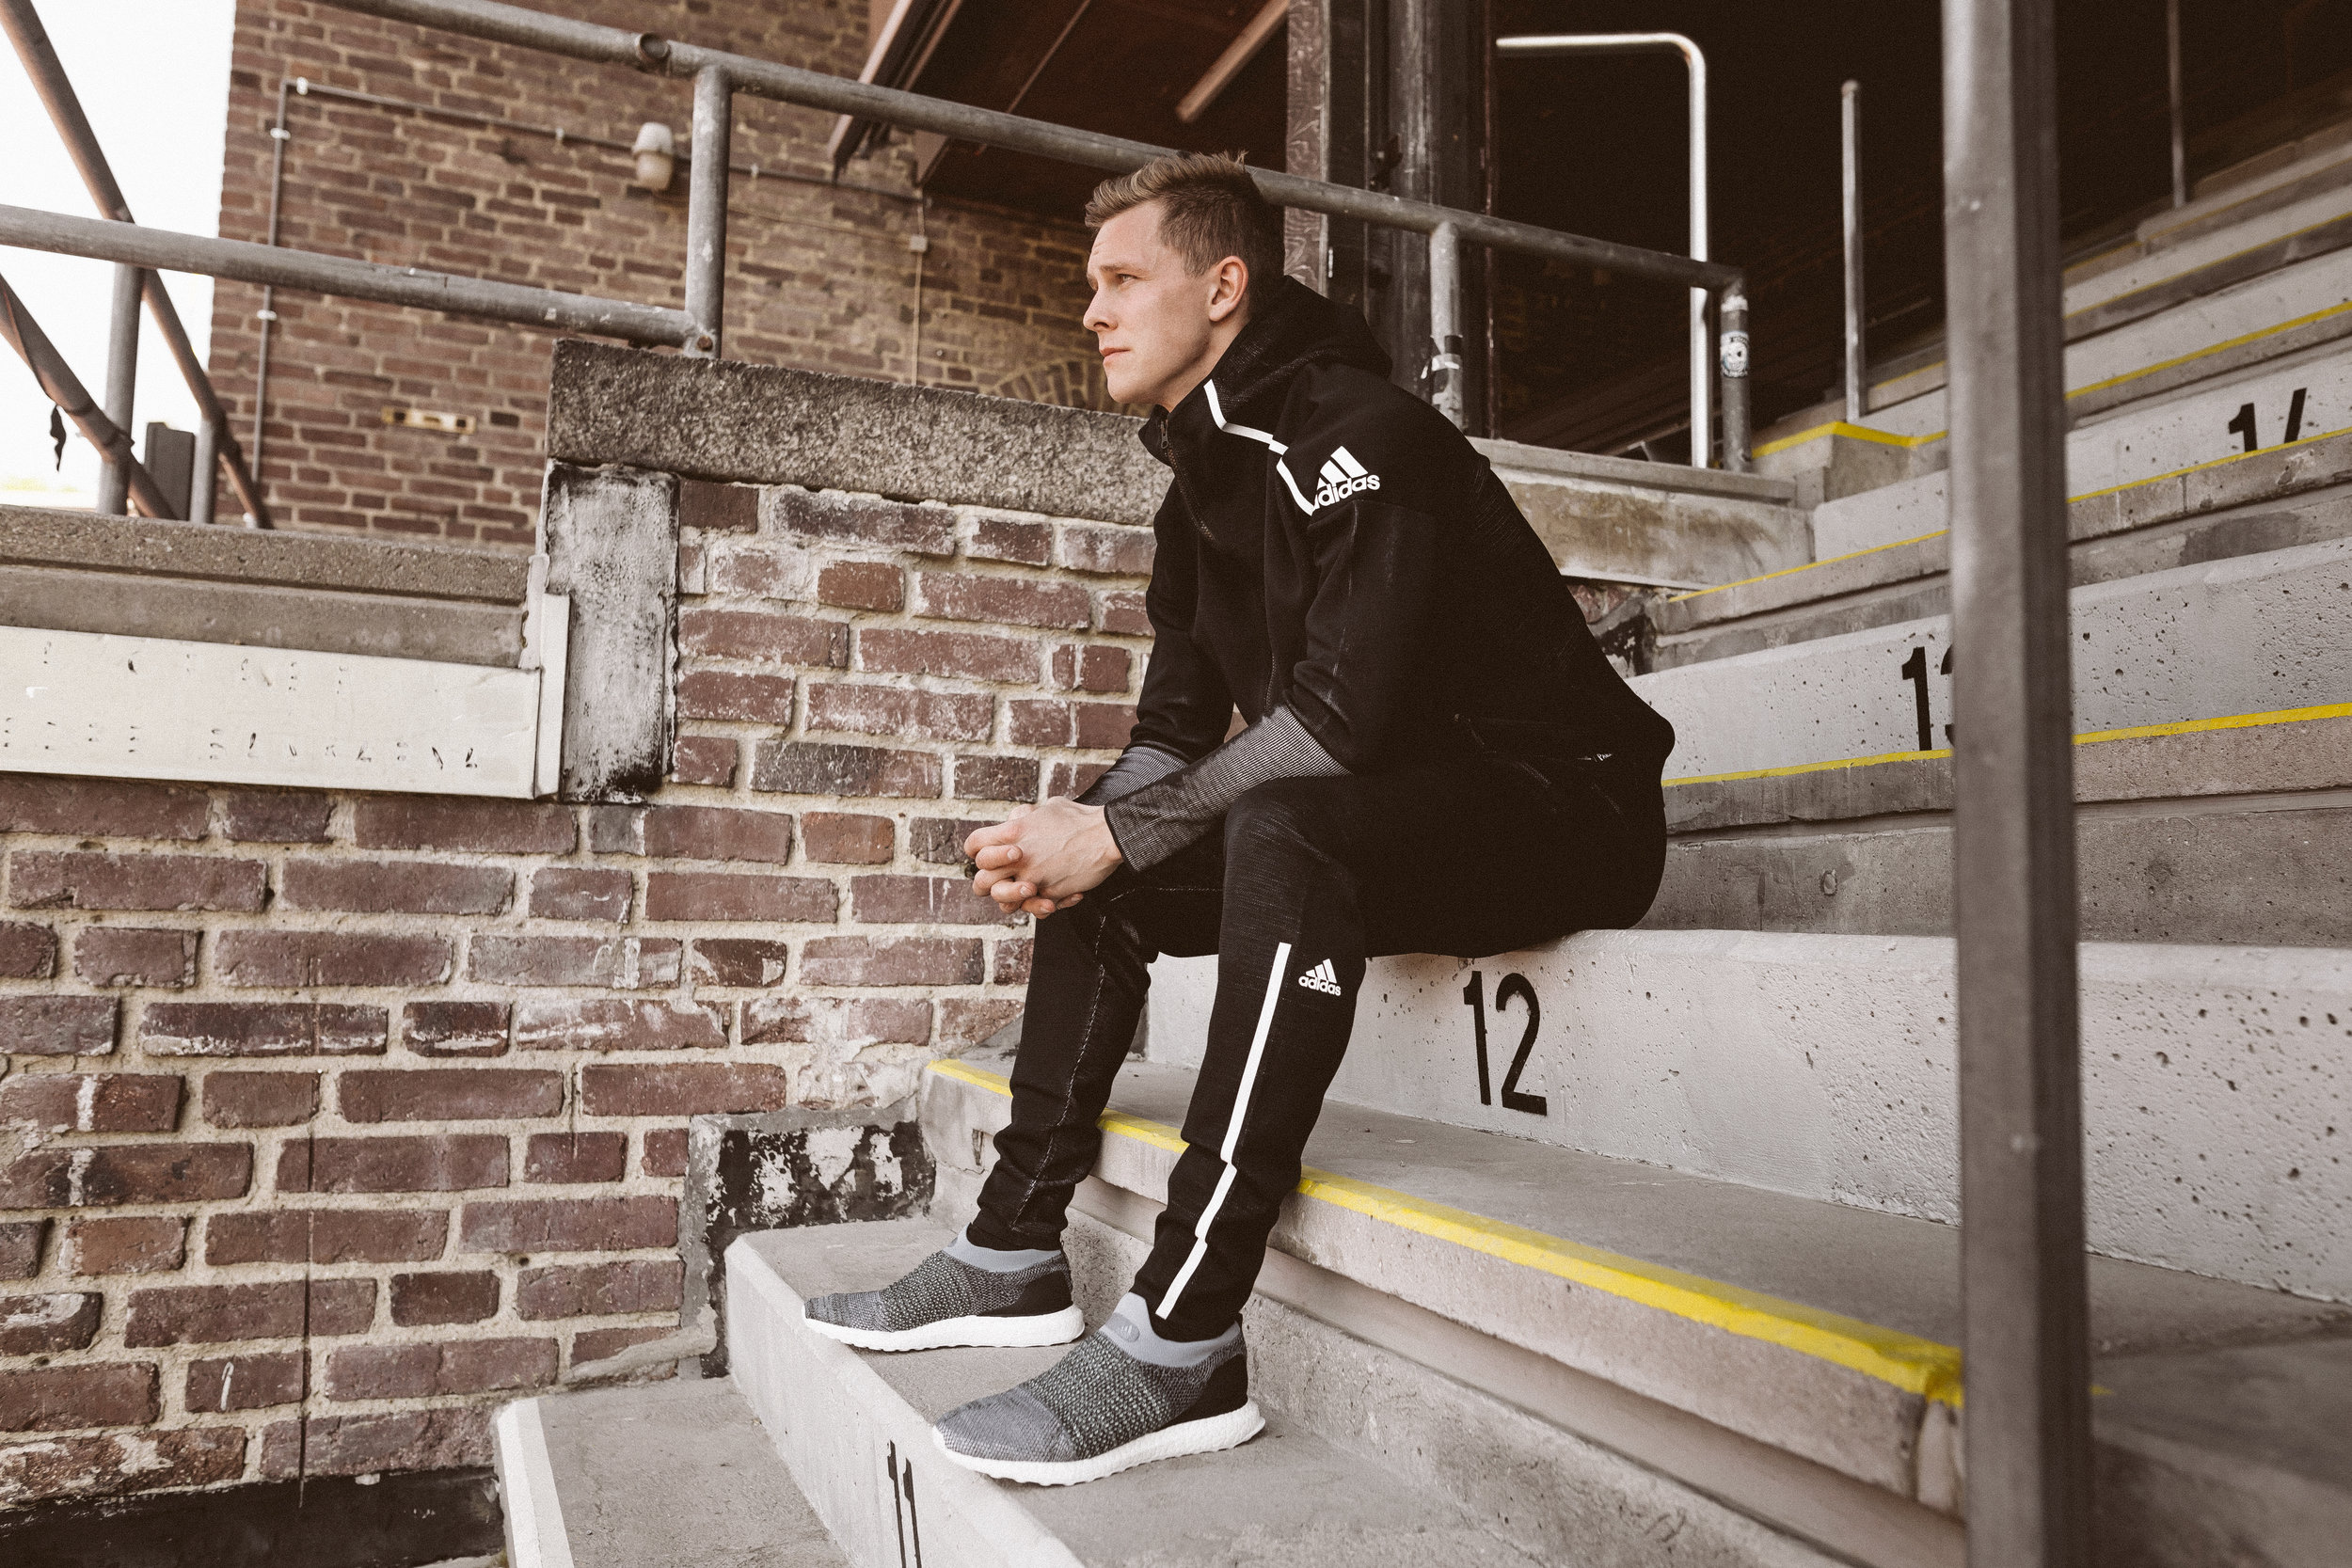 + ADIDAS +Z.N.E. PARLEYPRIMEKNIT - Take a look at the new Z.N.E. Parley Primeknitfrom adidas on the world cup playersEmil Krafth and Pontus Jansson+ Posted June 2018 +